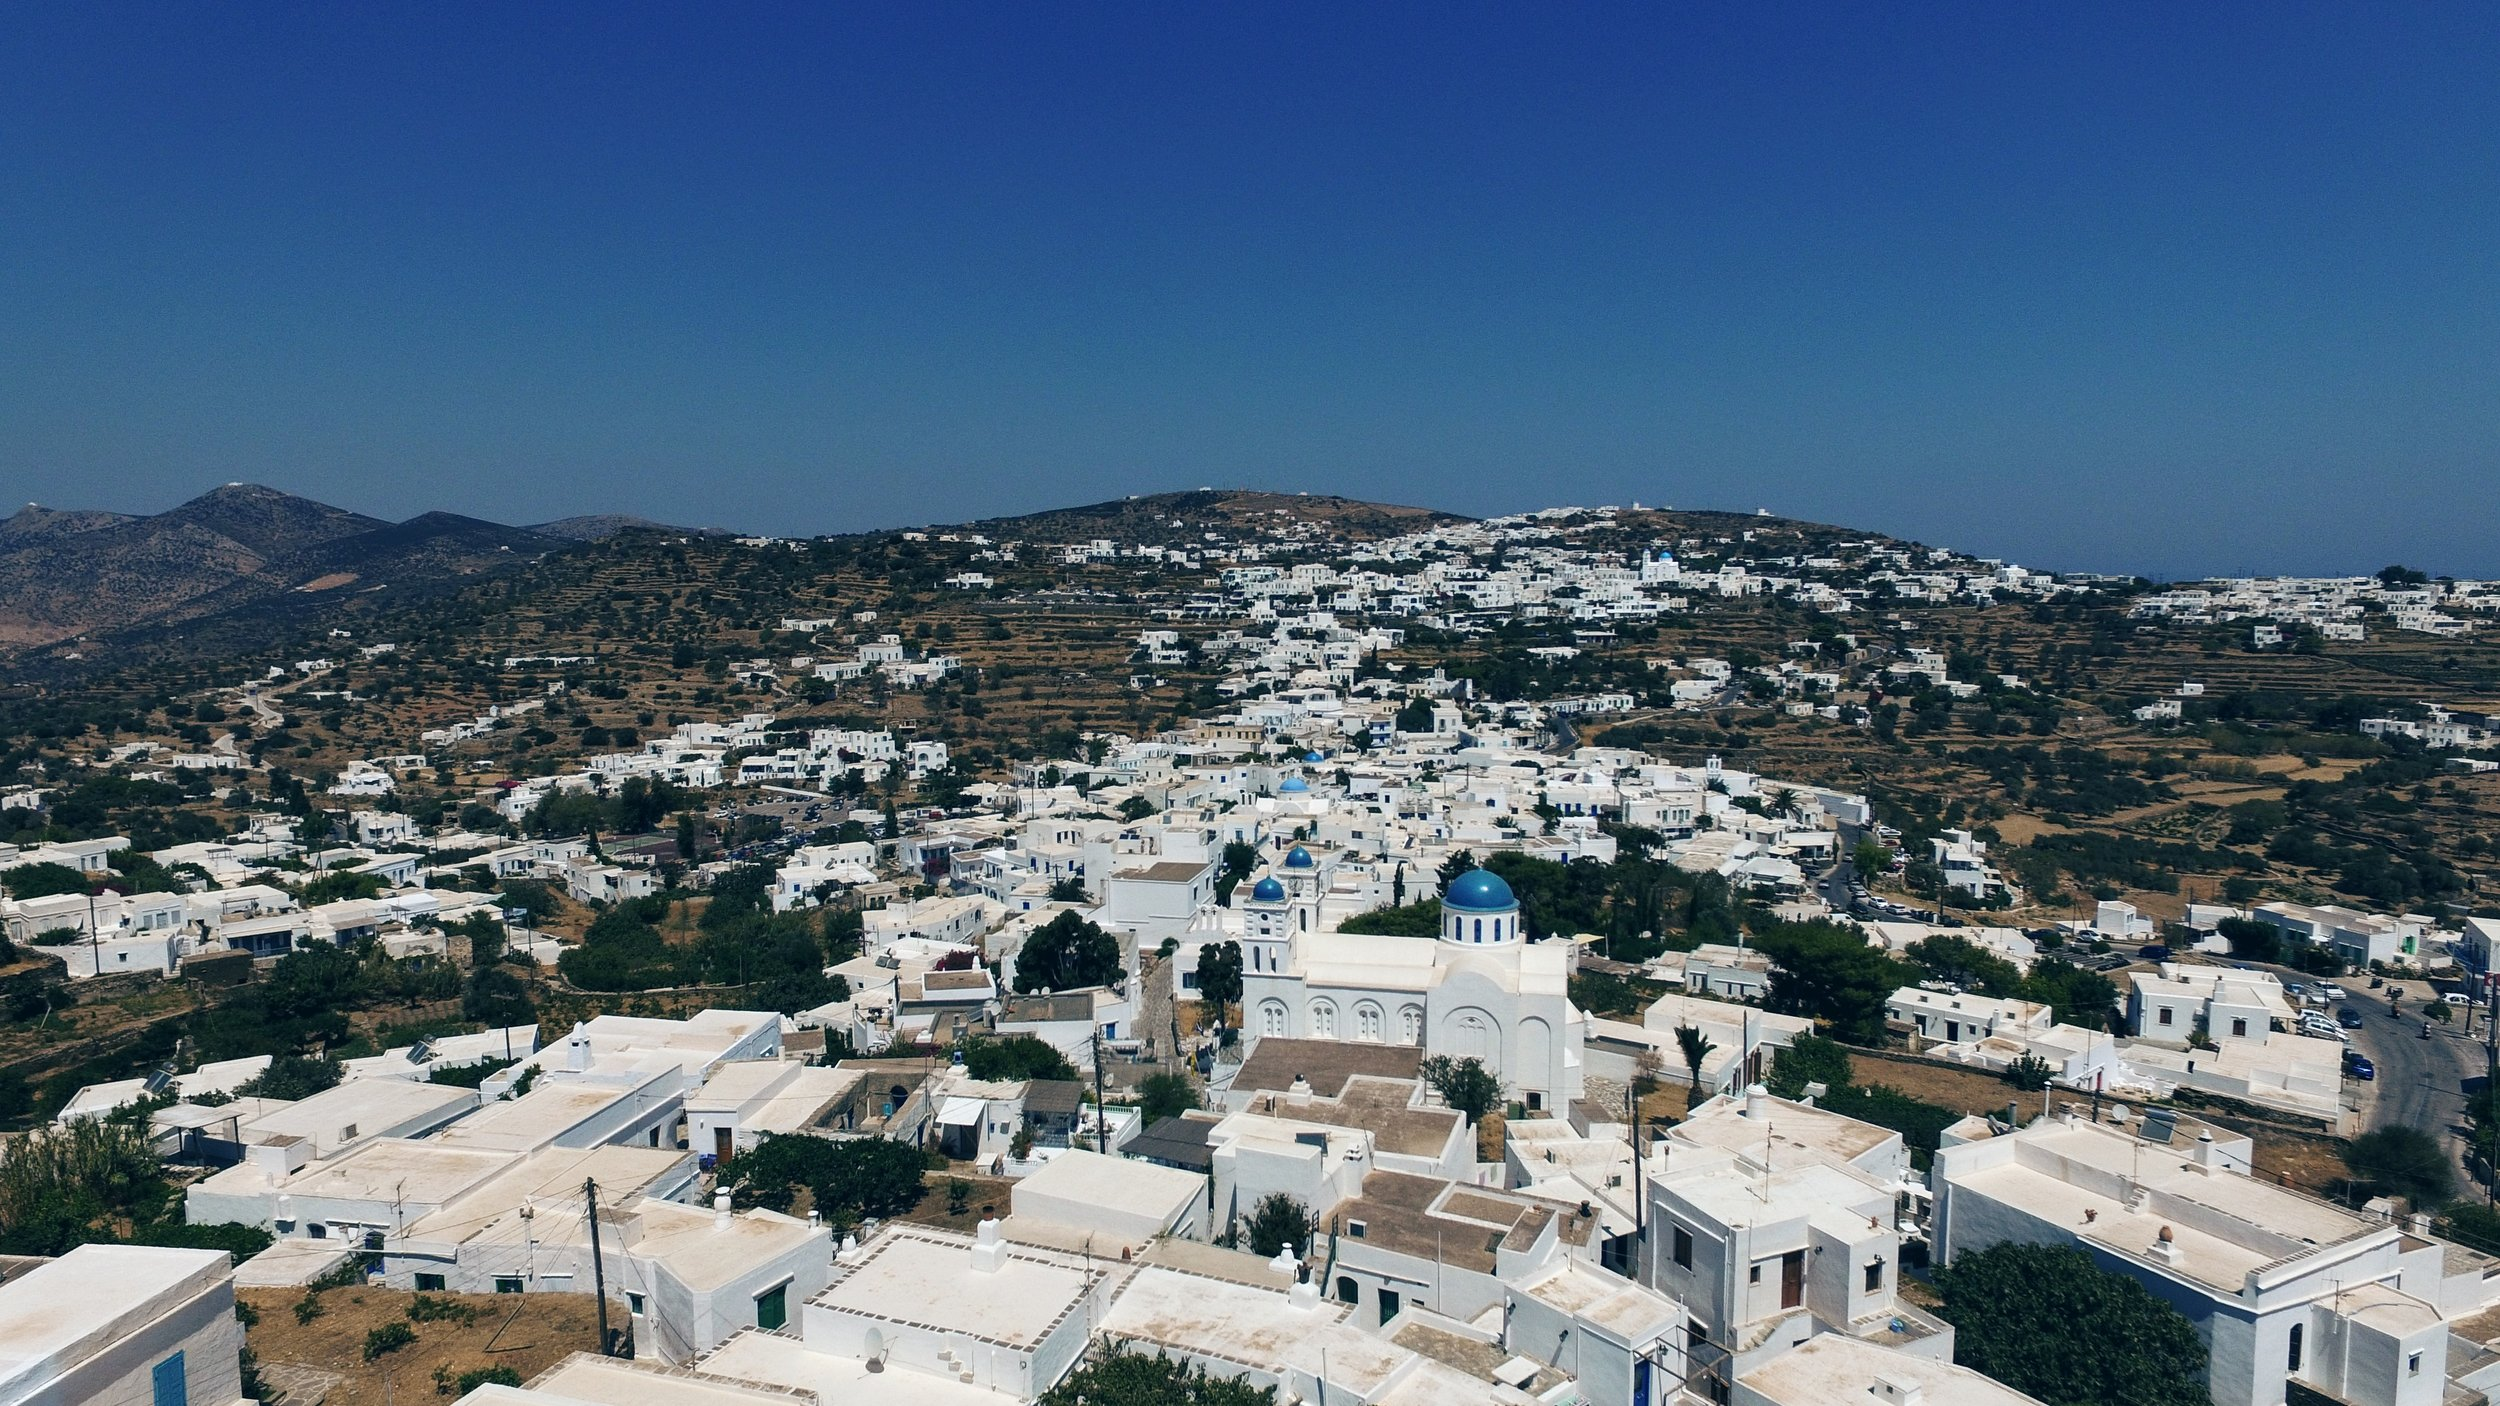 White-washed houses at Apollonia's settlement